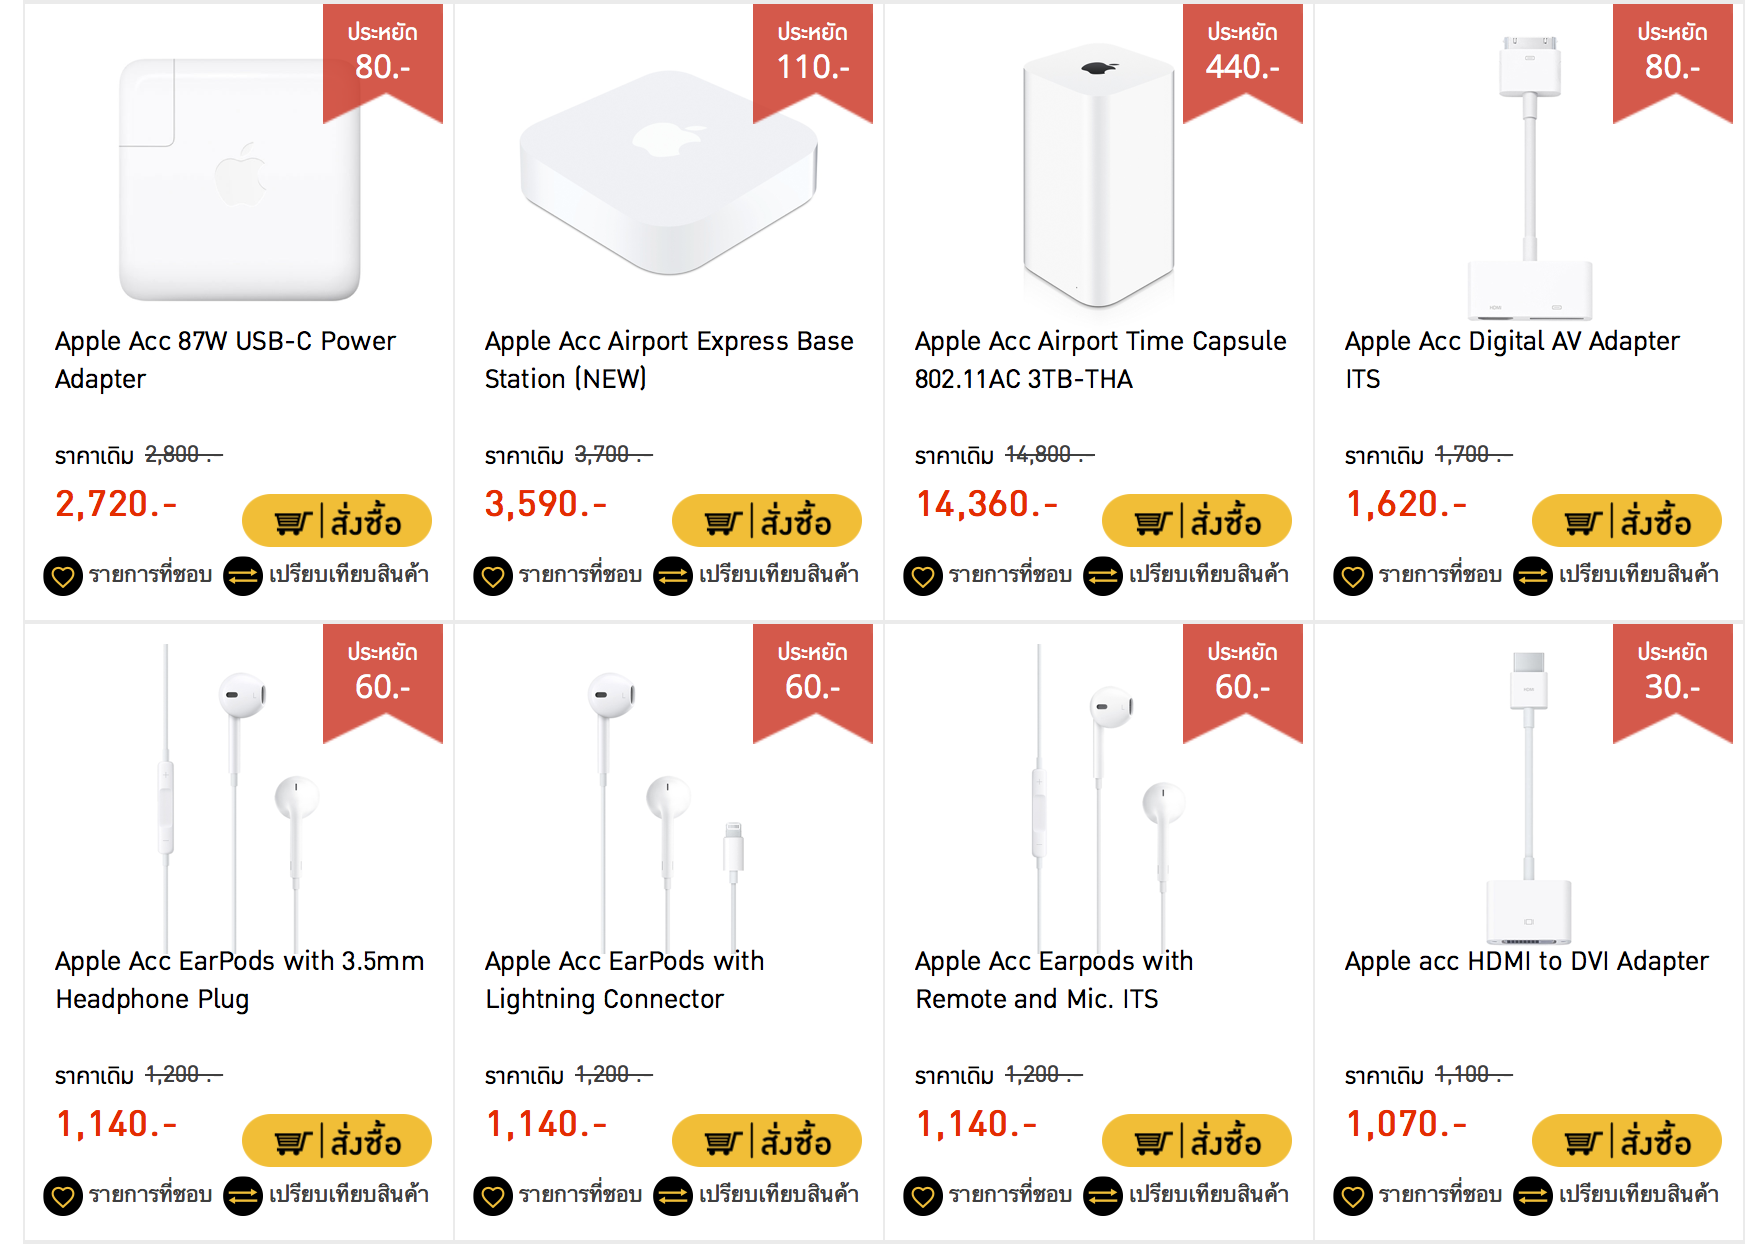 bananastore-promotion-apple-accessories-00001